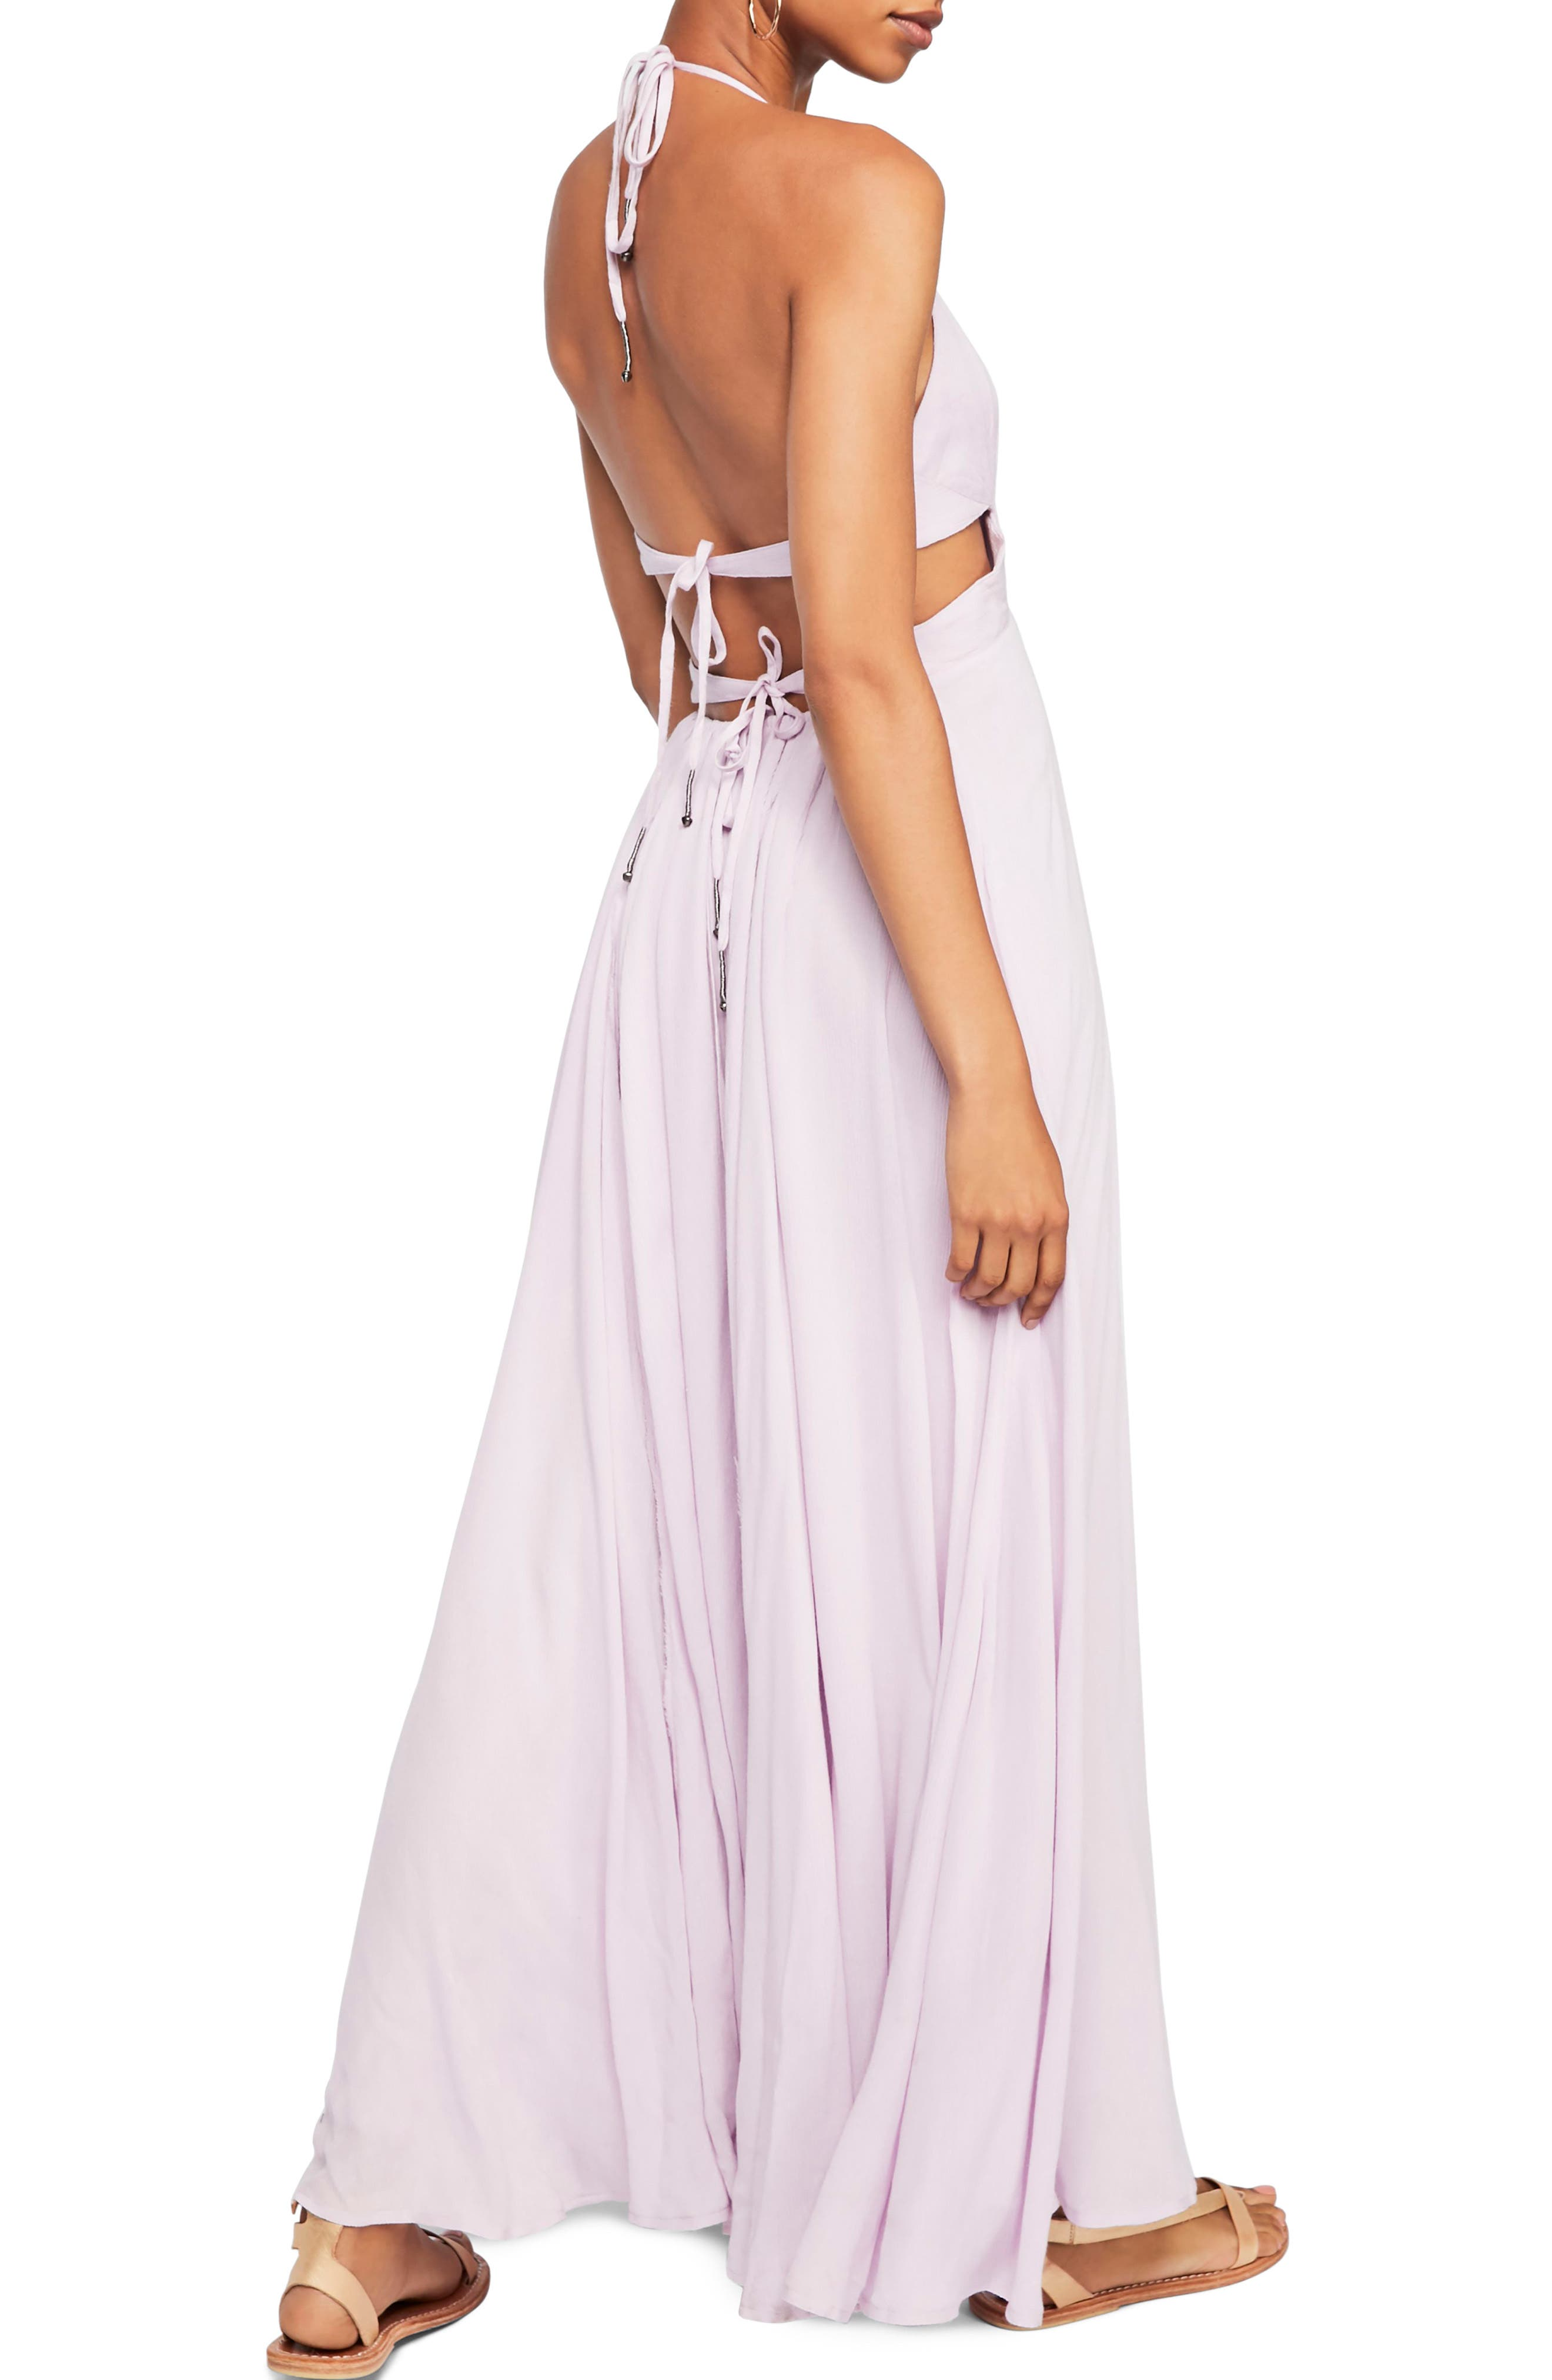 Endless Summer by Free People Lillie Maxi Dress,                             Alternate thumbnail 2, color,                             535